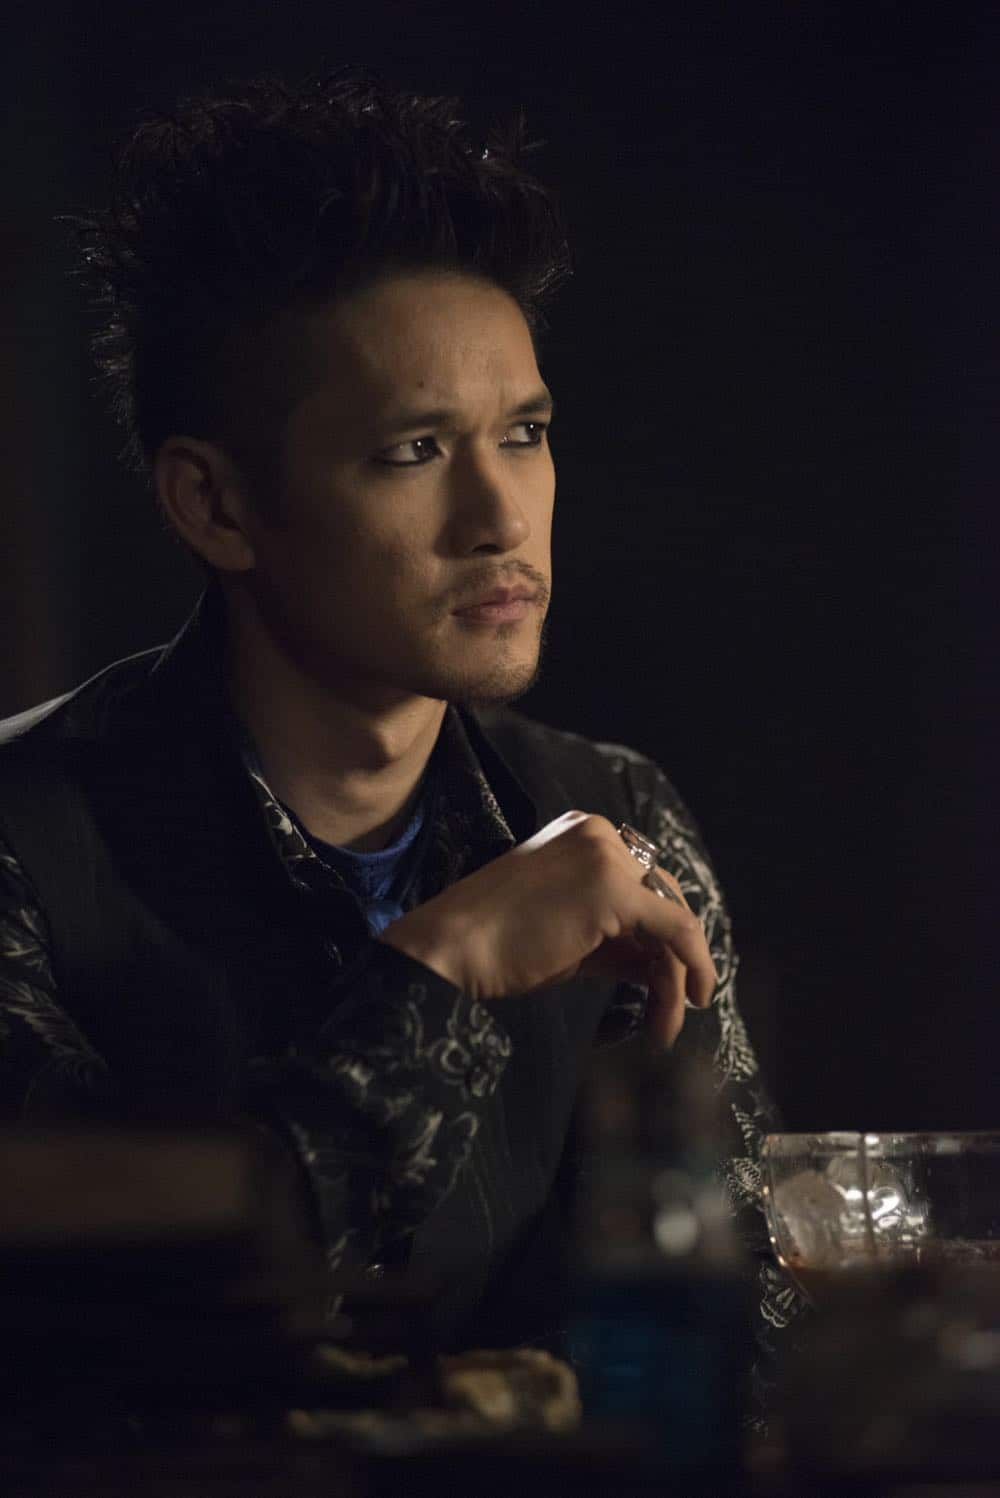 "SHADOWHUNTERS - ""Salt In The Wound"" - With the Owl's identity revealed, Alec, Isabelle, and Clary head to Alicante to try and find a way to stop him. Luke and Simon team up to track Lilith's  latest possible victim. Maia reflects on her past. This episode of ""Shadowhunters"" airs Tuesday, May 1 (8:00 - 9:00 p.m. EDT) on Freeform. (Freeform/John Medland) HARRY CHUM JR."